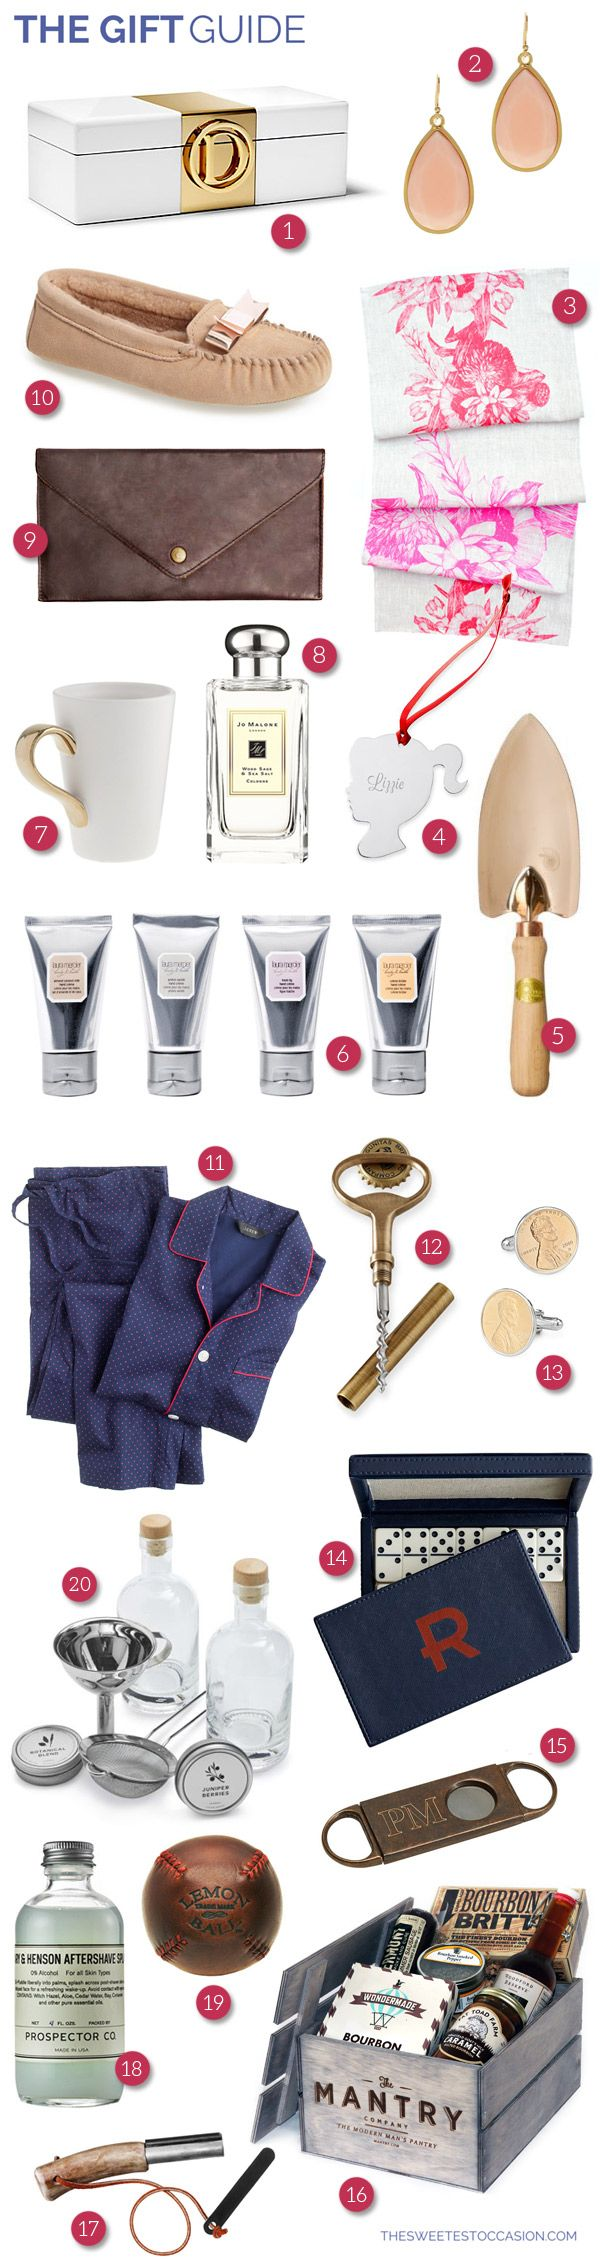 The Gift Guide: Gifts for Inlaws from @cydconverse